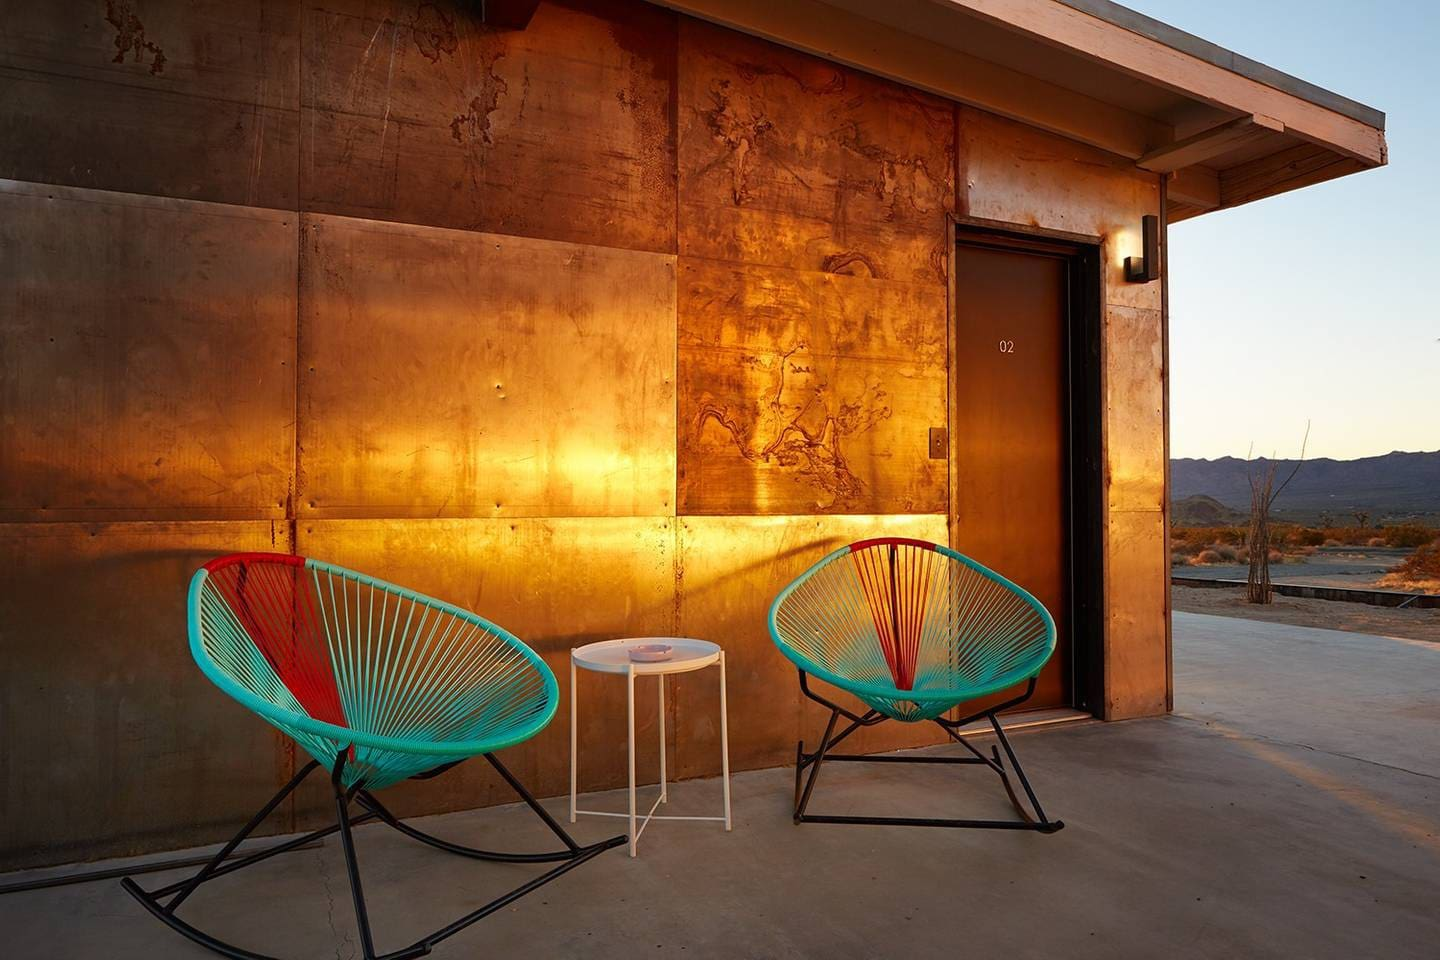 ✚ the natural patina of rusting steel panels reflects the light of the early morning sun